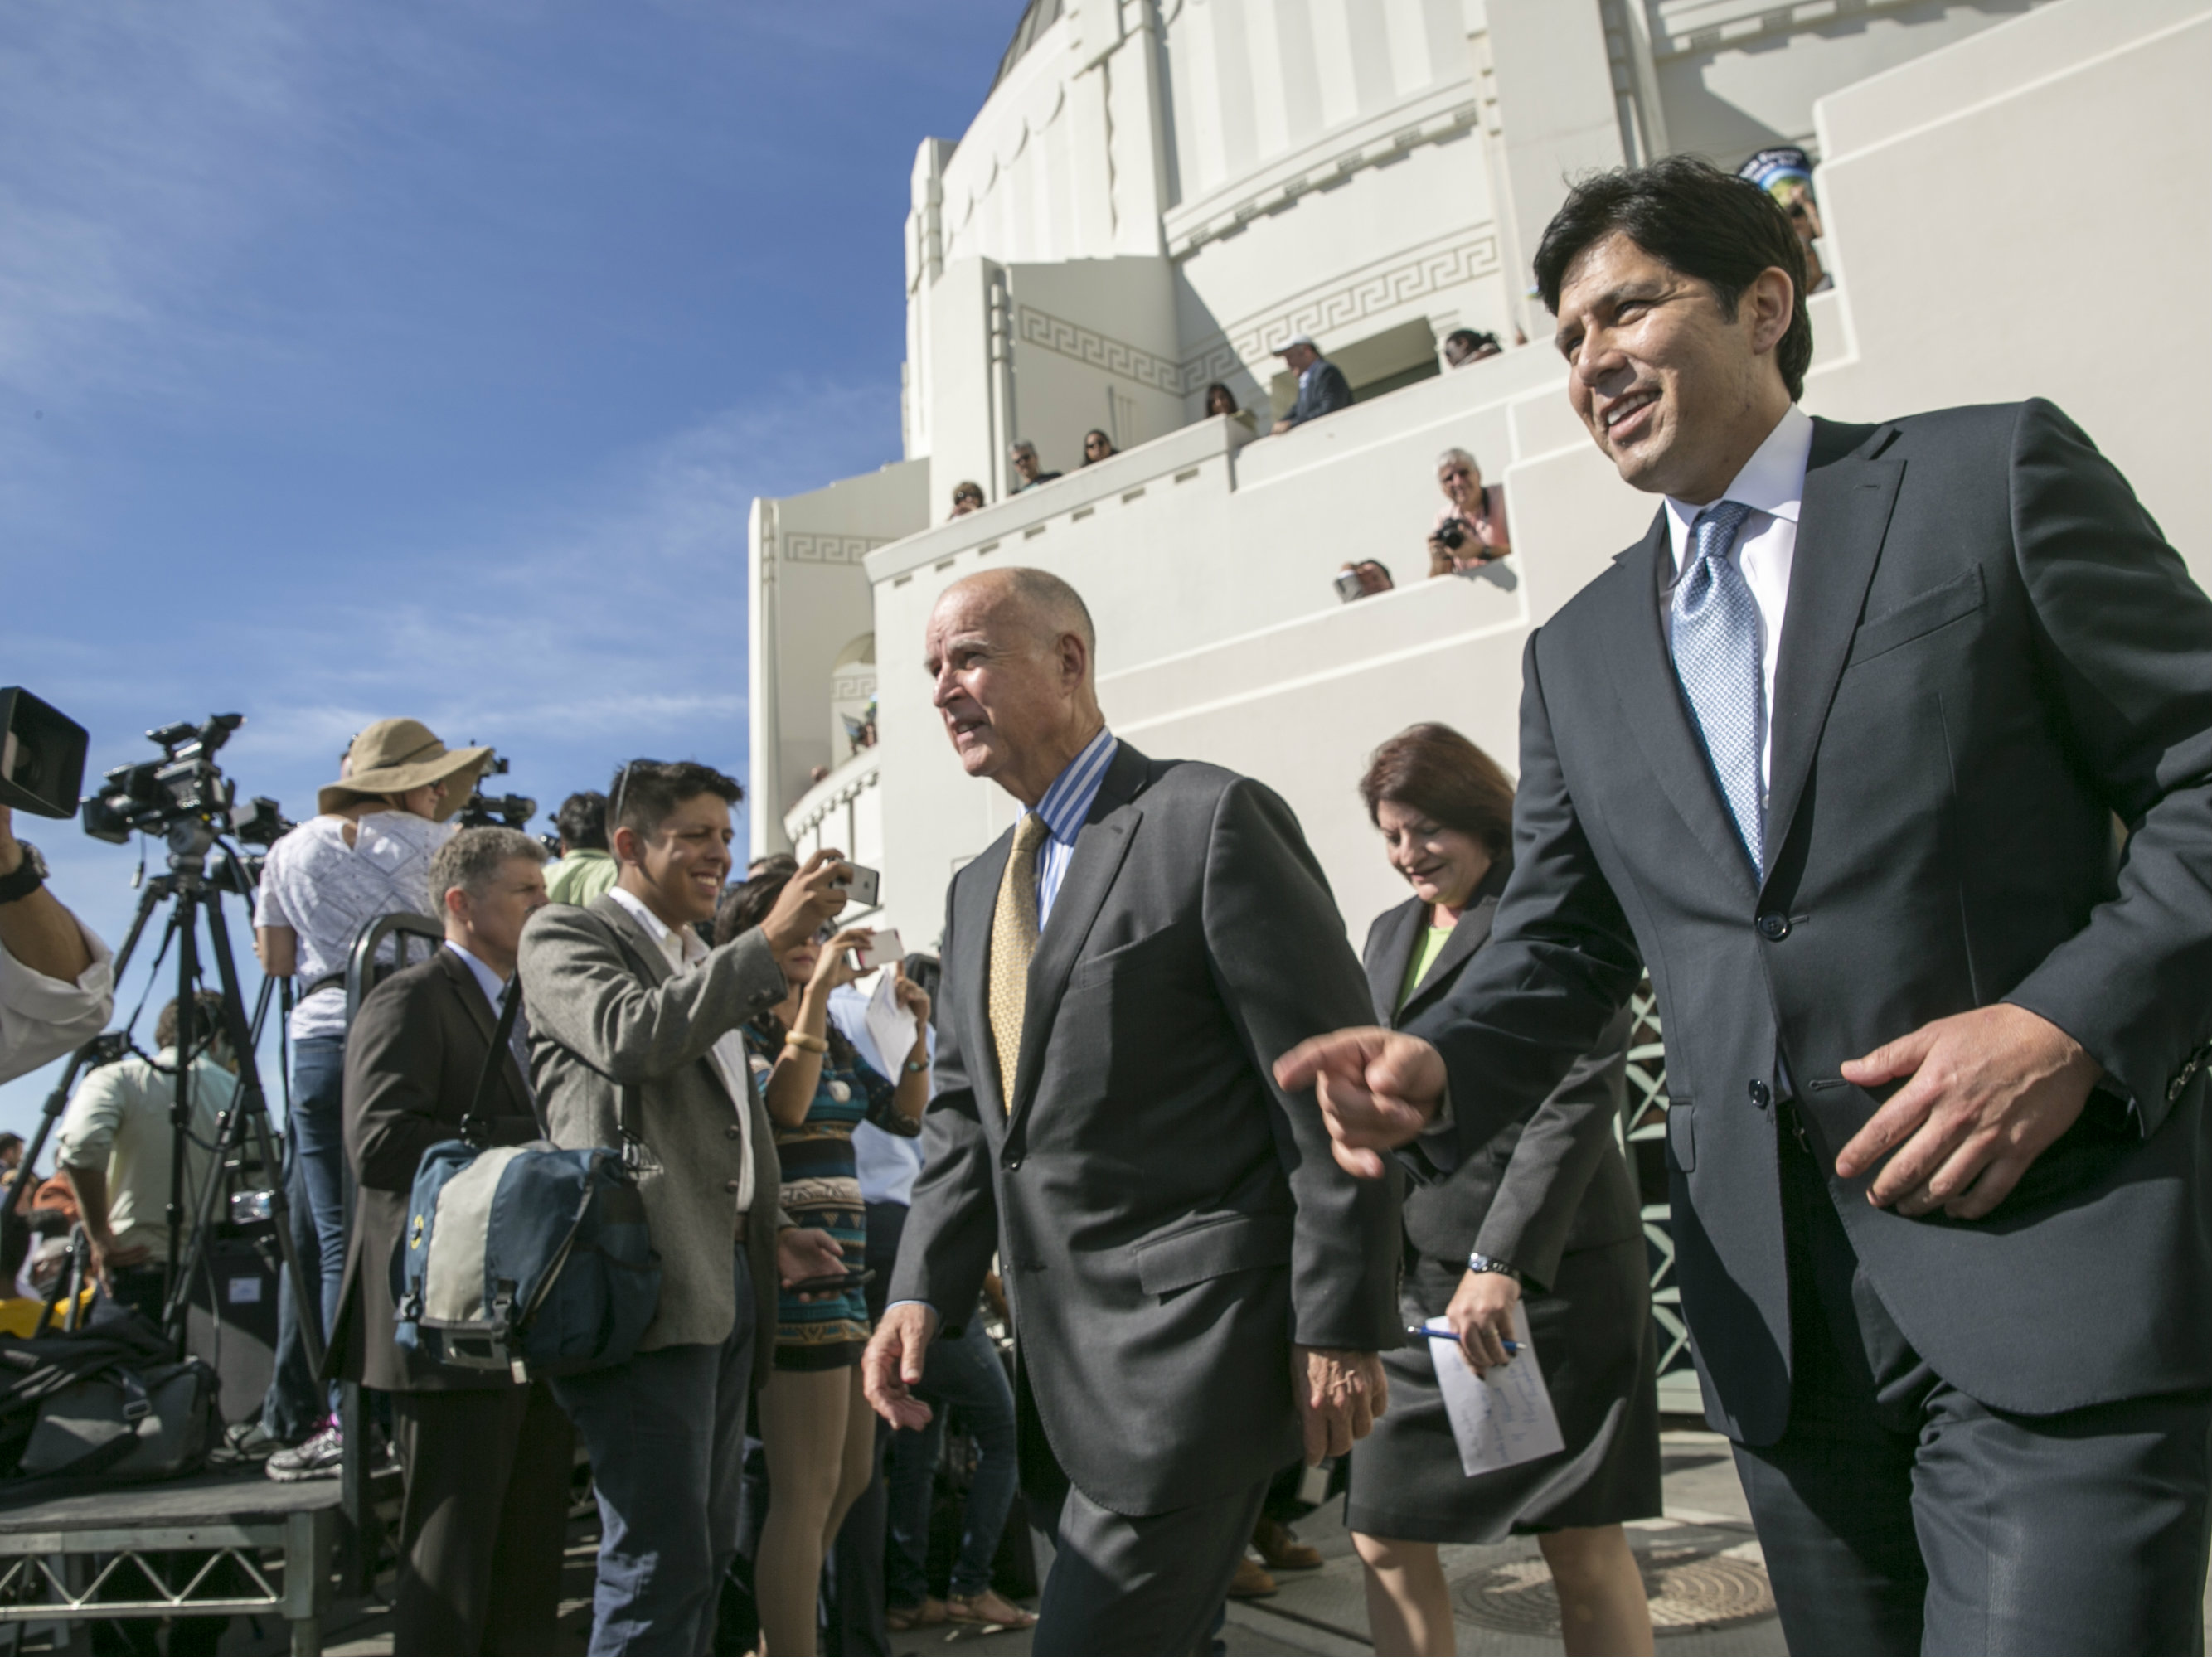 California Gov. Jerry Brown, center, arrives with Senate President pro Tempore Kevin De Leon, D-Los Angeles, right, and Assembly speaker Toni Atkins, second from right, to sign landmark legislation SB 350 to combat climate change. Damian Dovarganes / AP